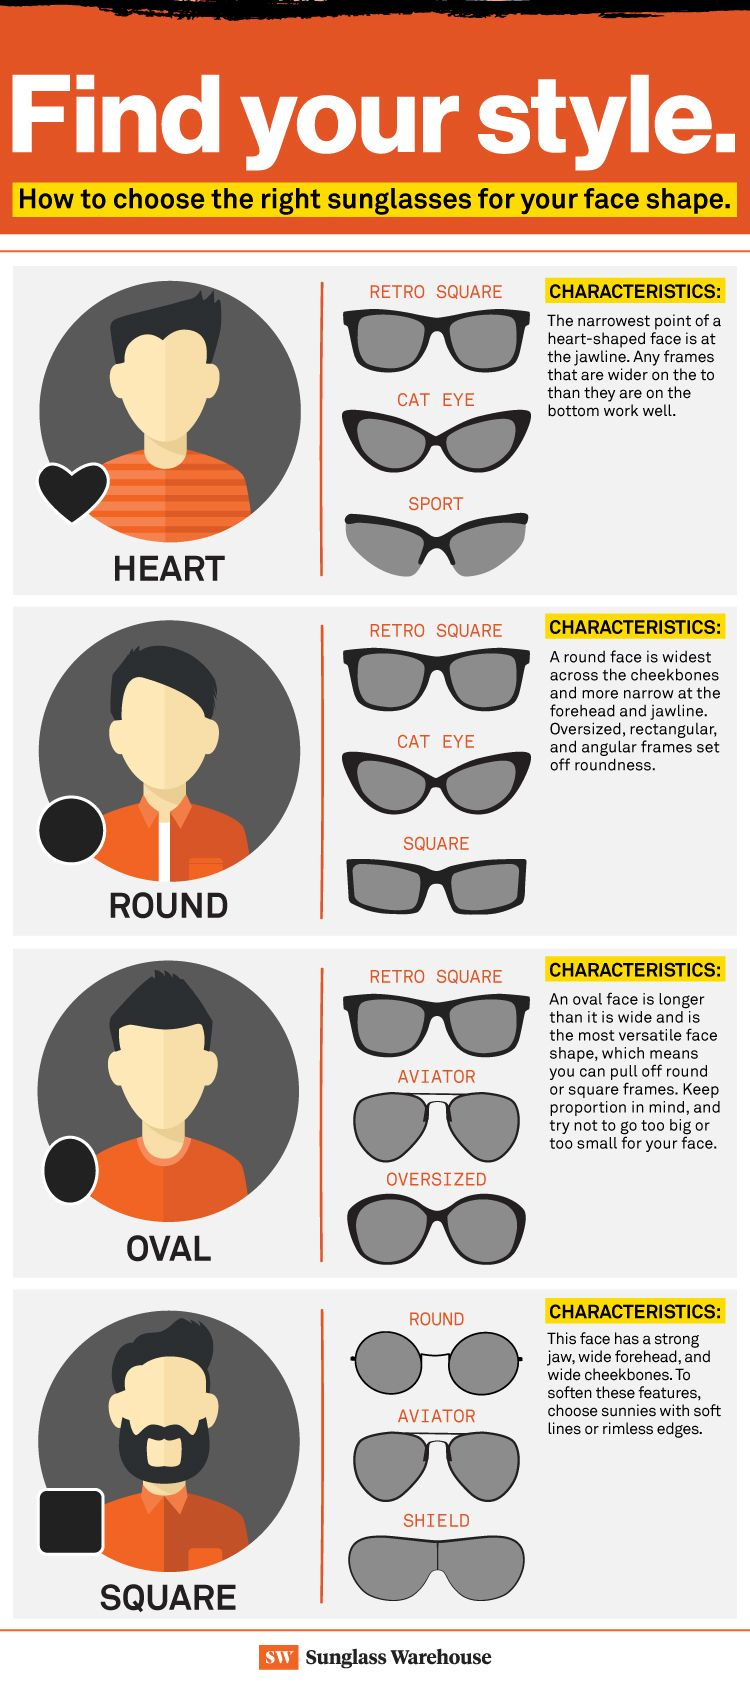 3dce9a9a1559 How to Choose the Best Sunglasses for Your Face Shape | Shade Style ...